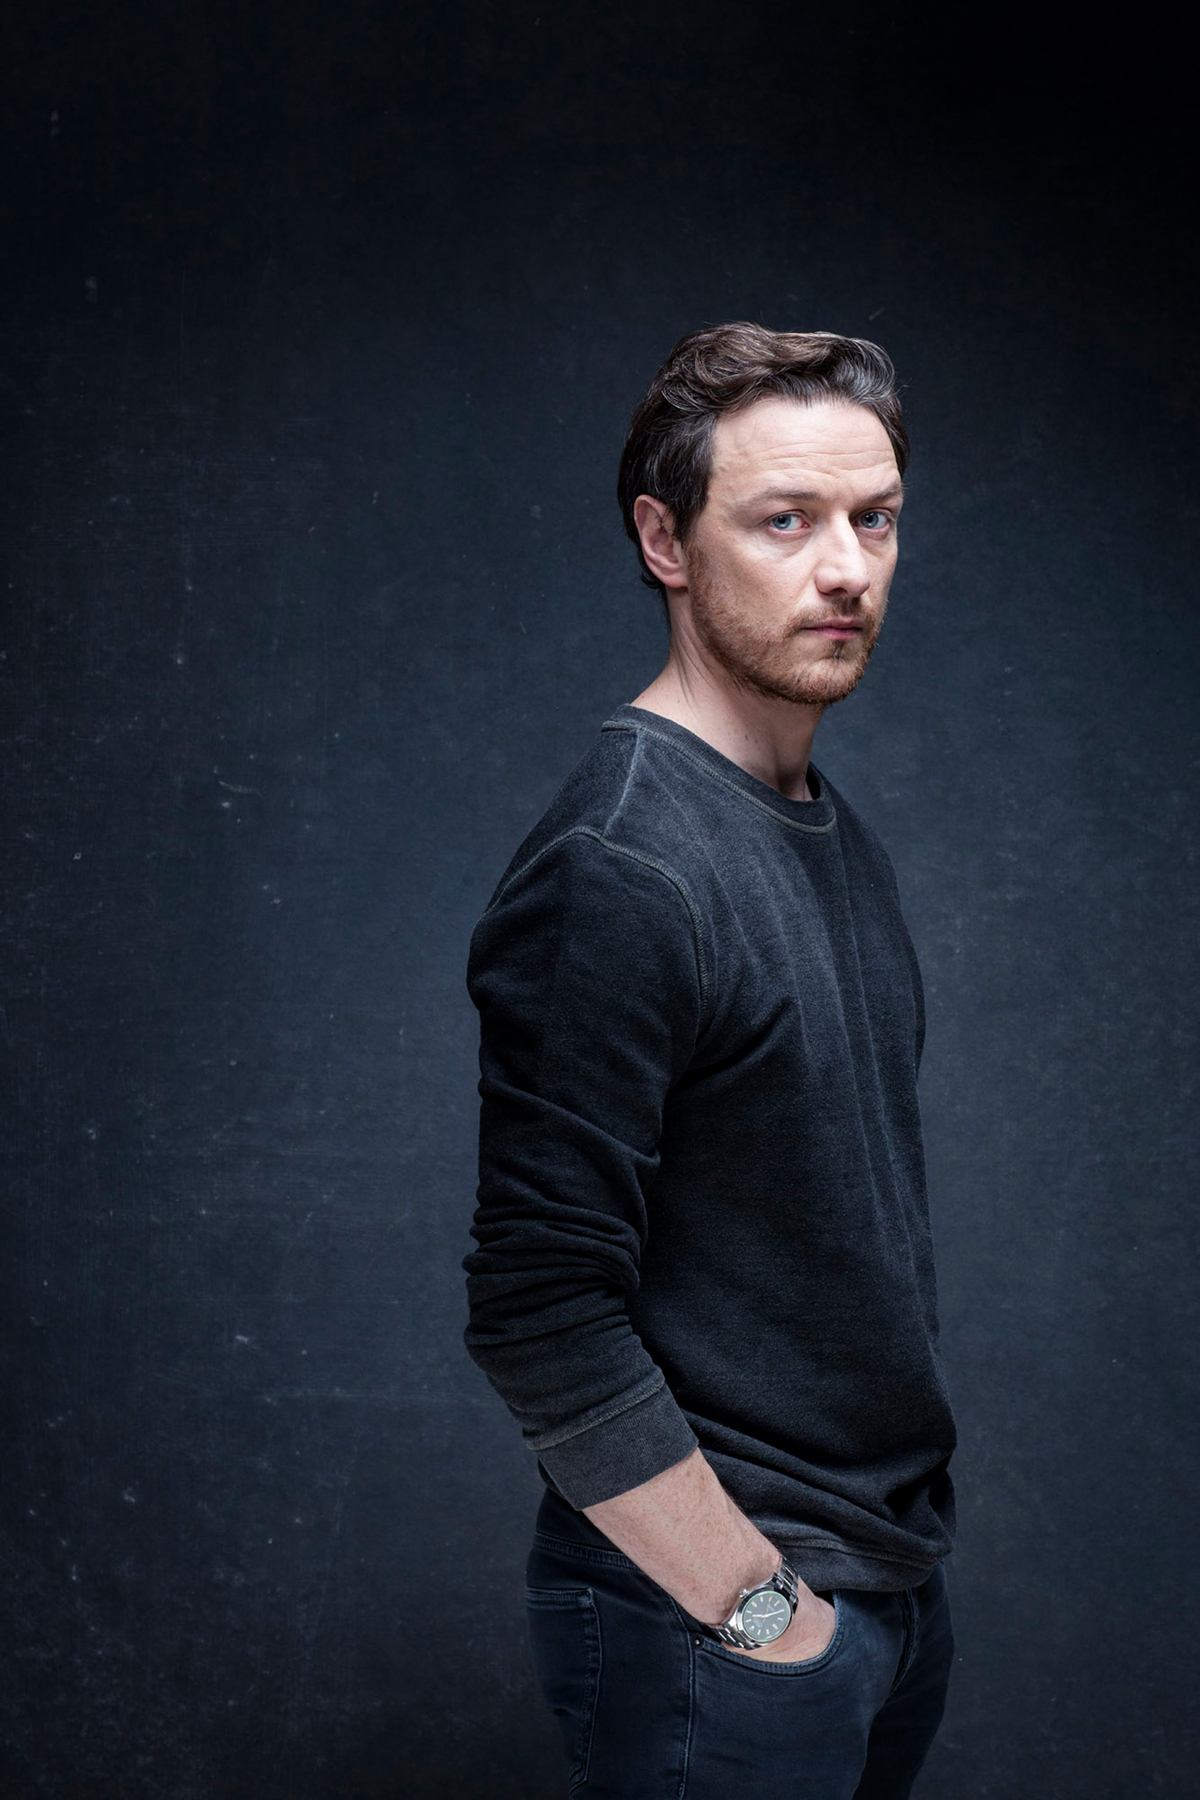 James McAvoy photo #779602